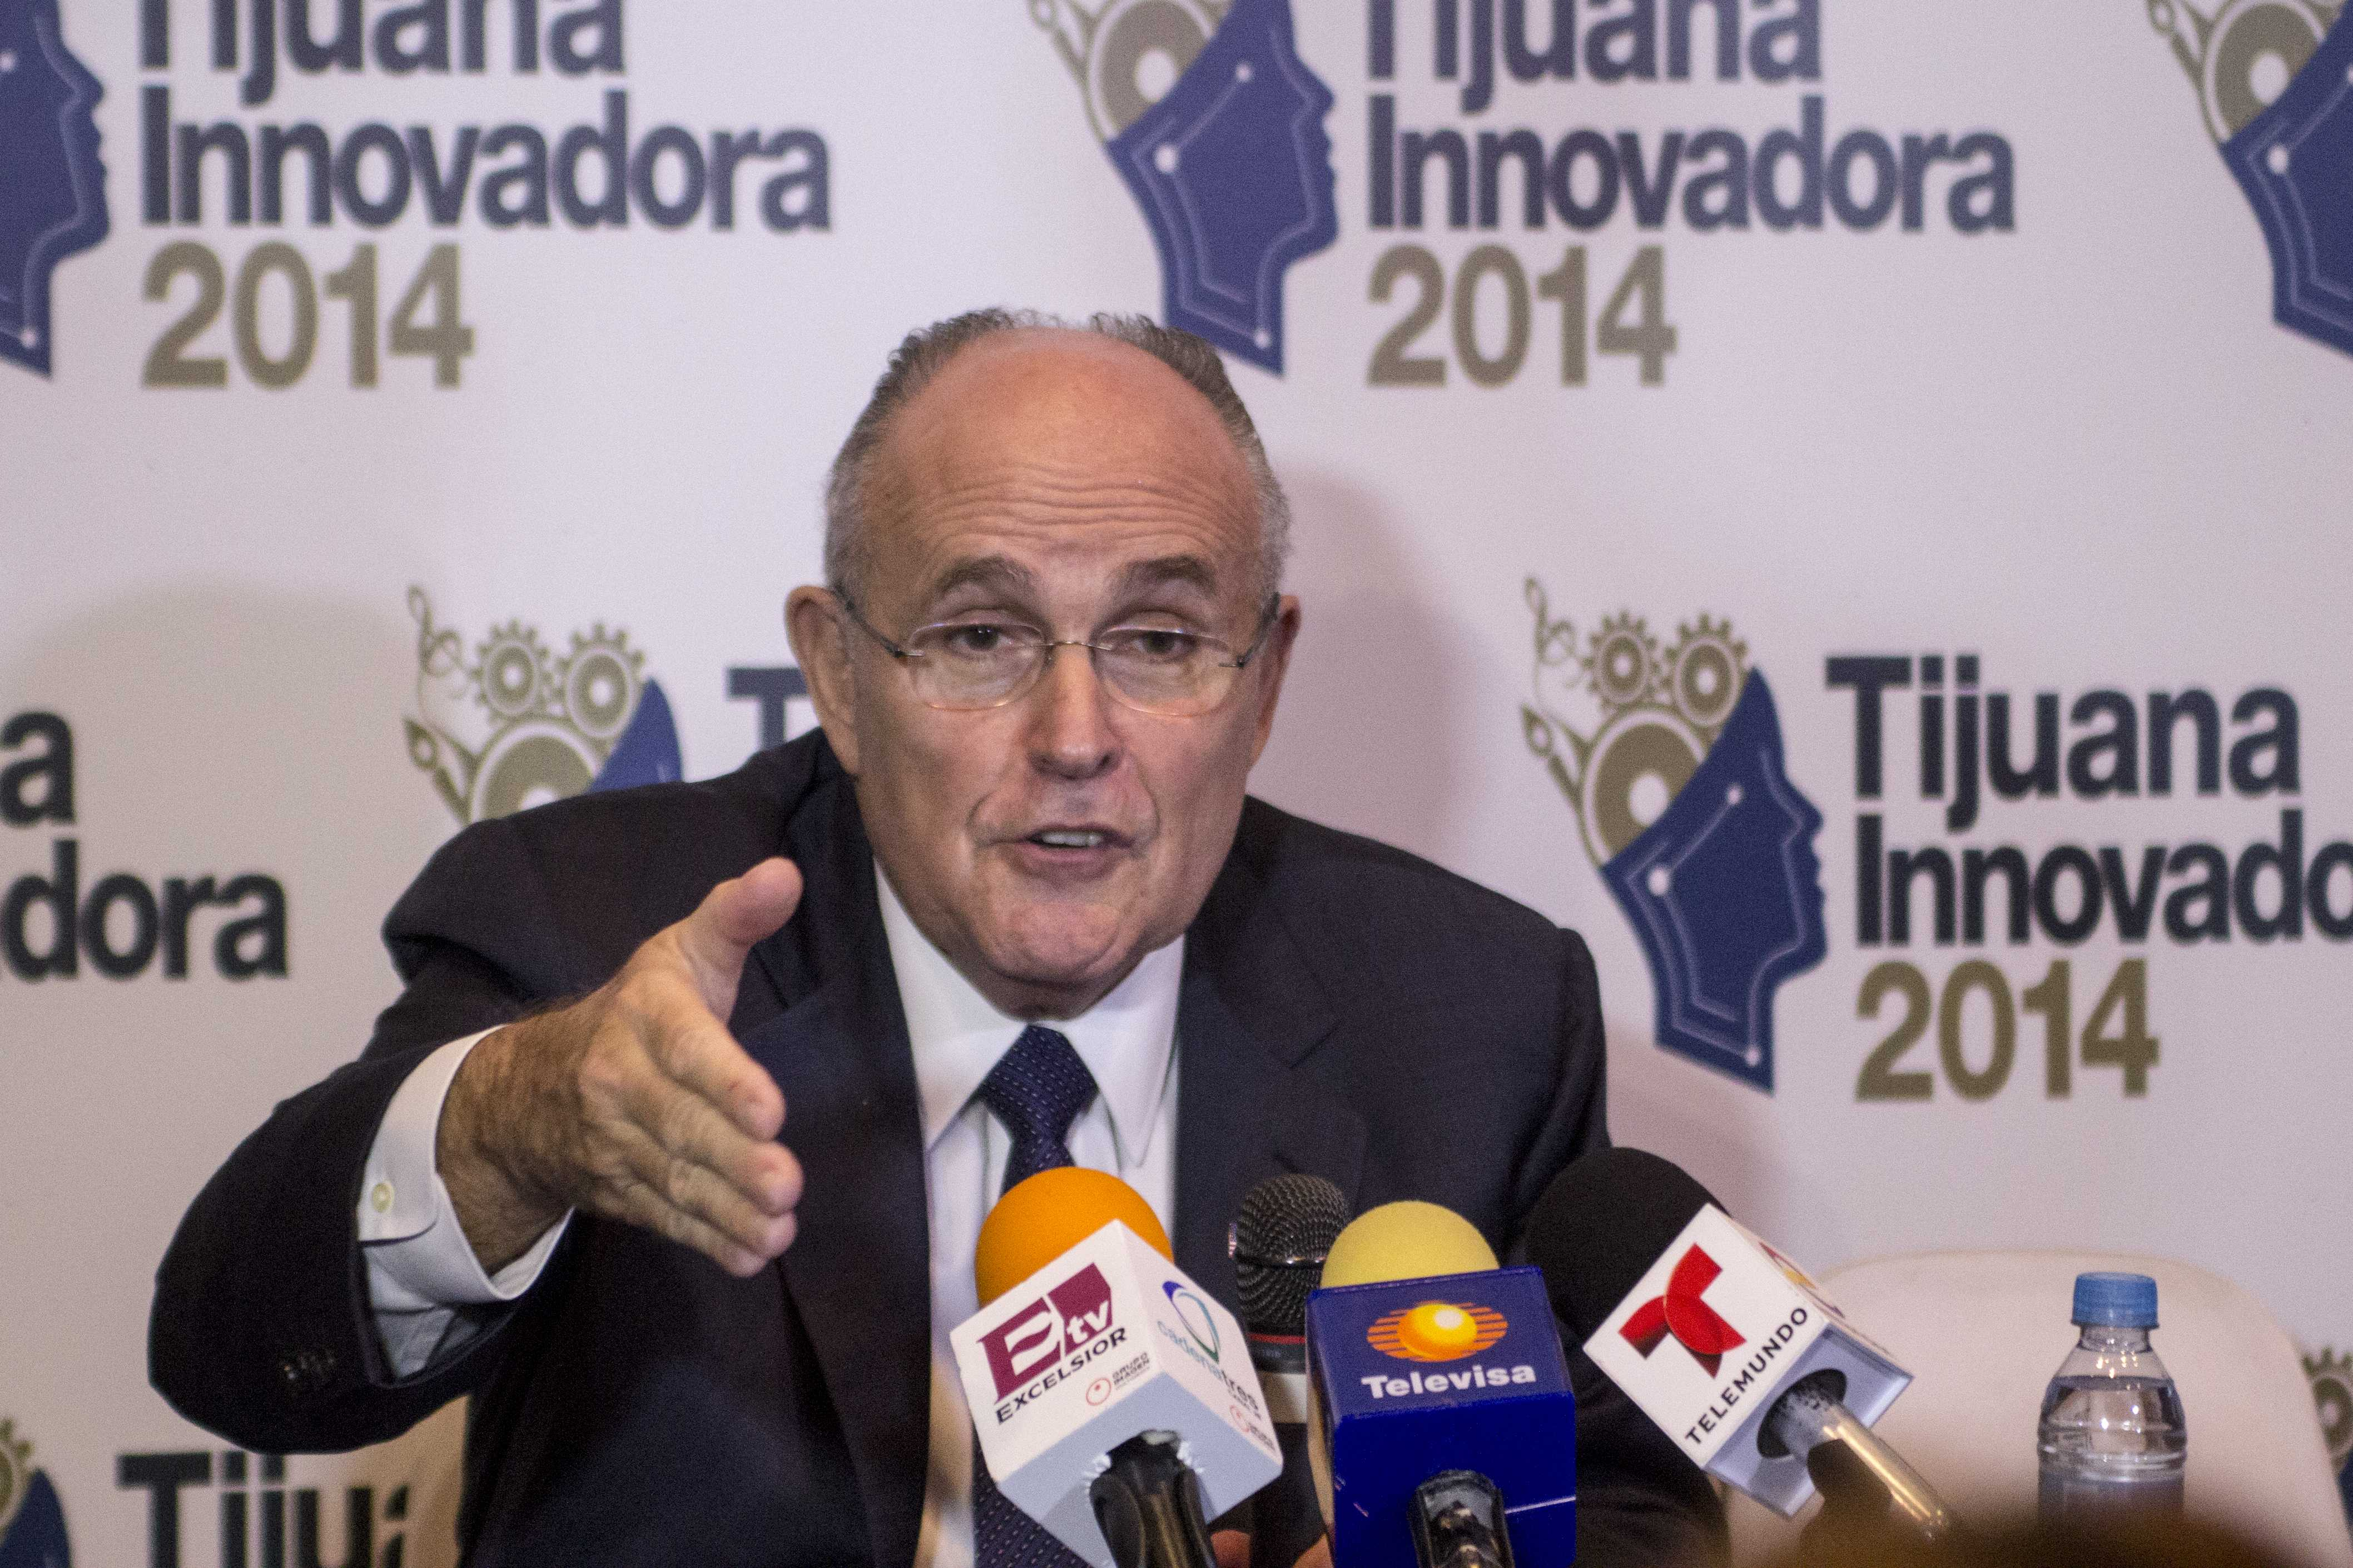 Former New York City Mayor Rudy Giuliani speaks about how the city restructured its Police Department diminish crime rates. He spoke at a press conference Oct. 19 at CECUT, Cultural Center of Tijuana, headquarters of Tijuana Innovadora. (Photo by Celia Jimenez)